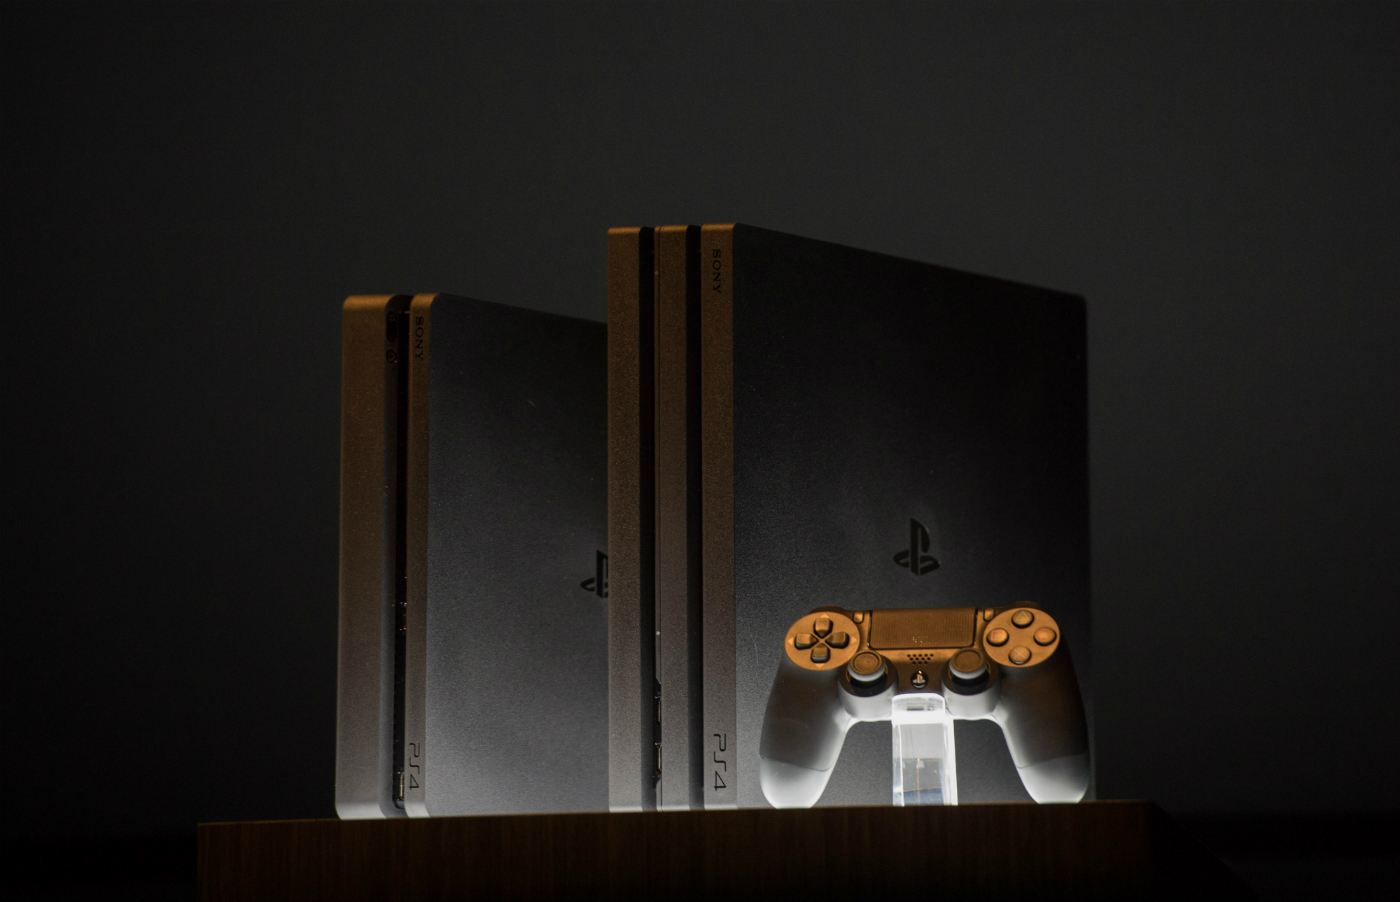 The PS4 Pro, as explained by the man who designed it